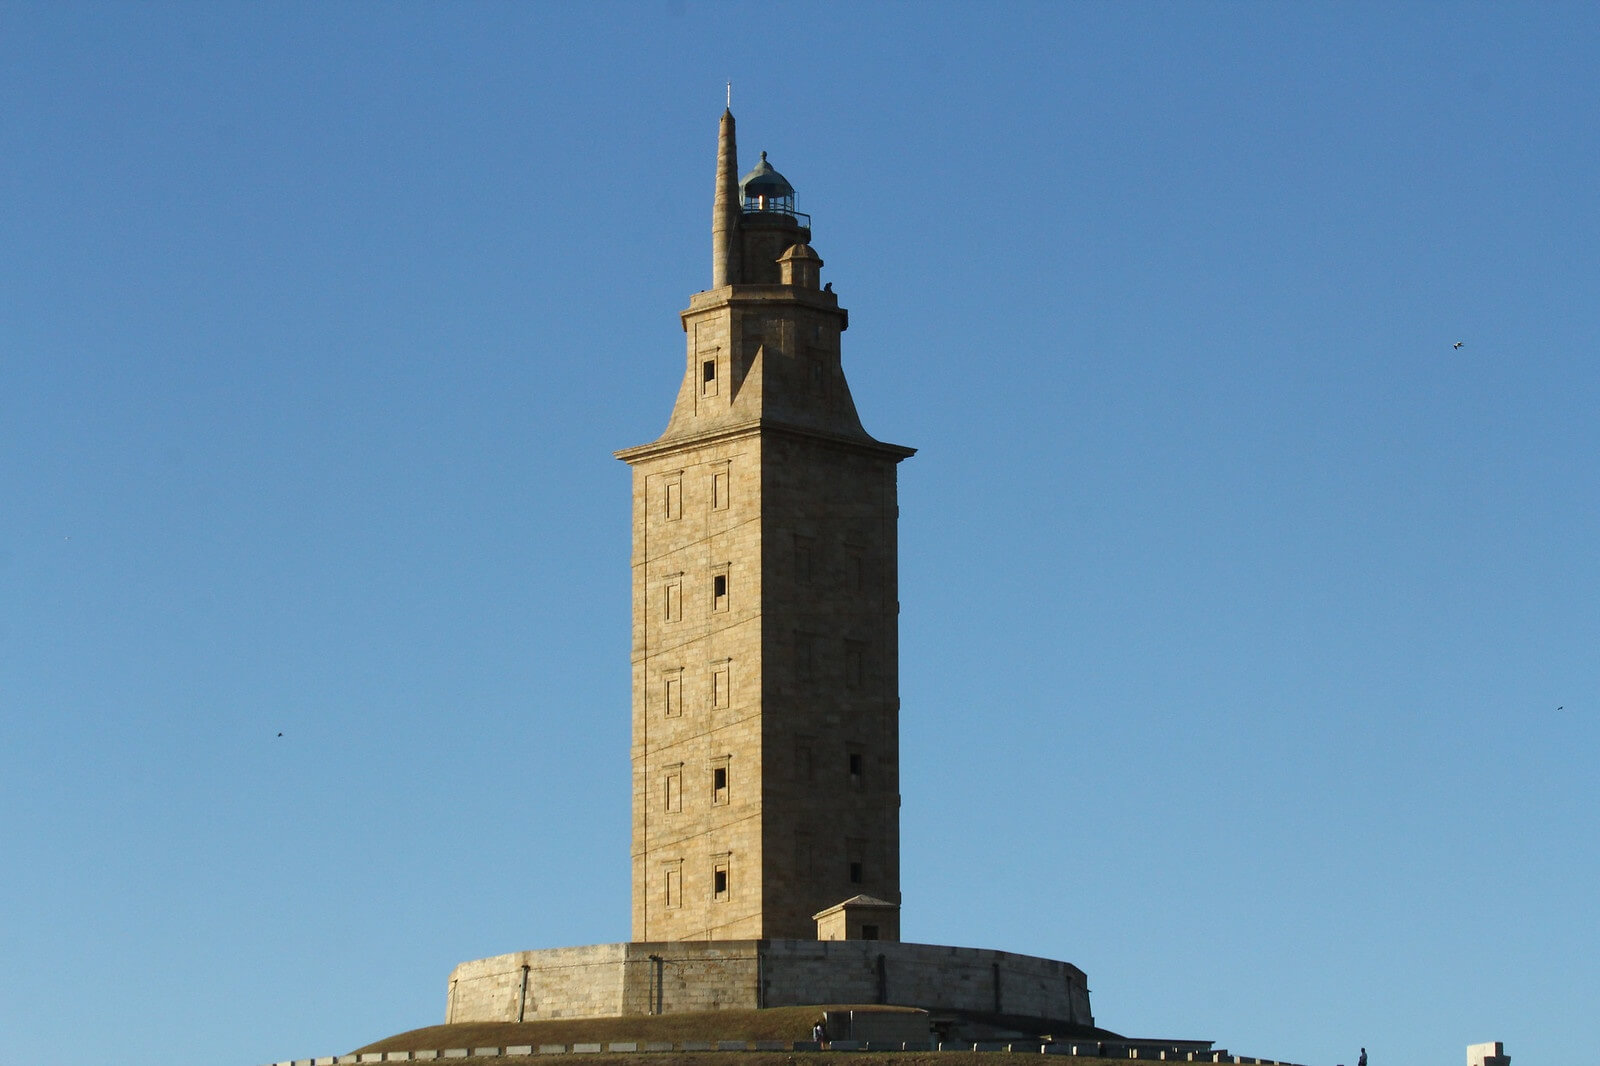 5 Things to do with your family in A Coruña - Tower of Hercules